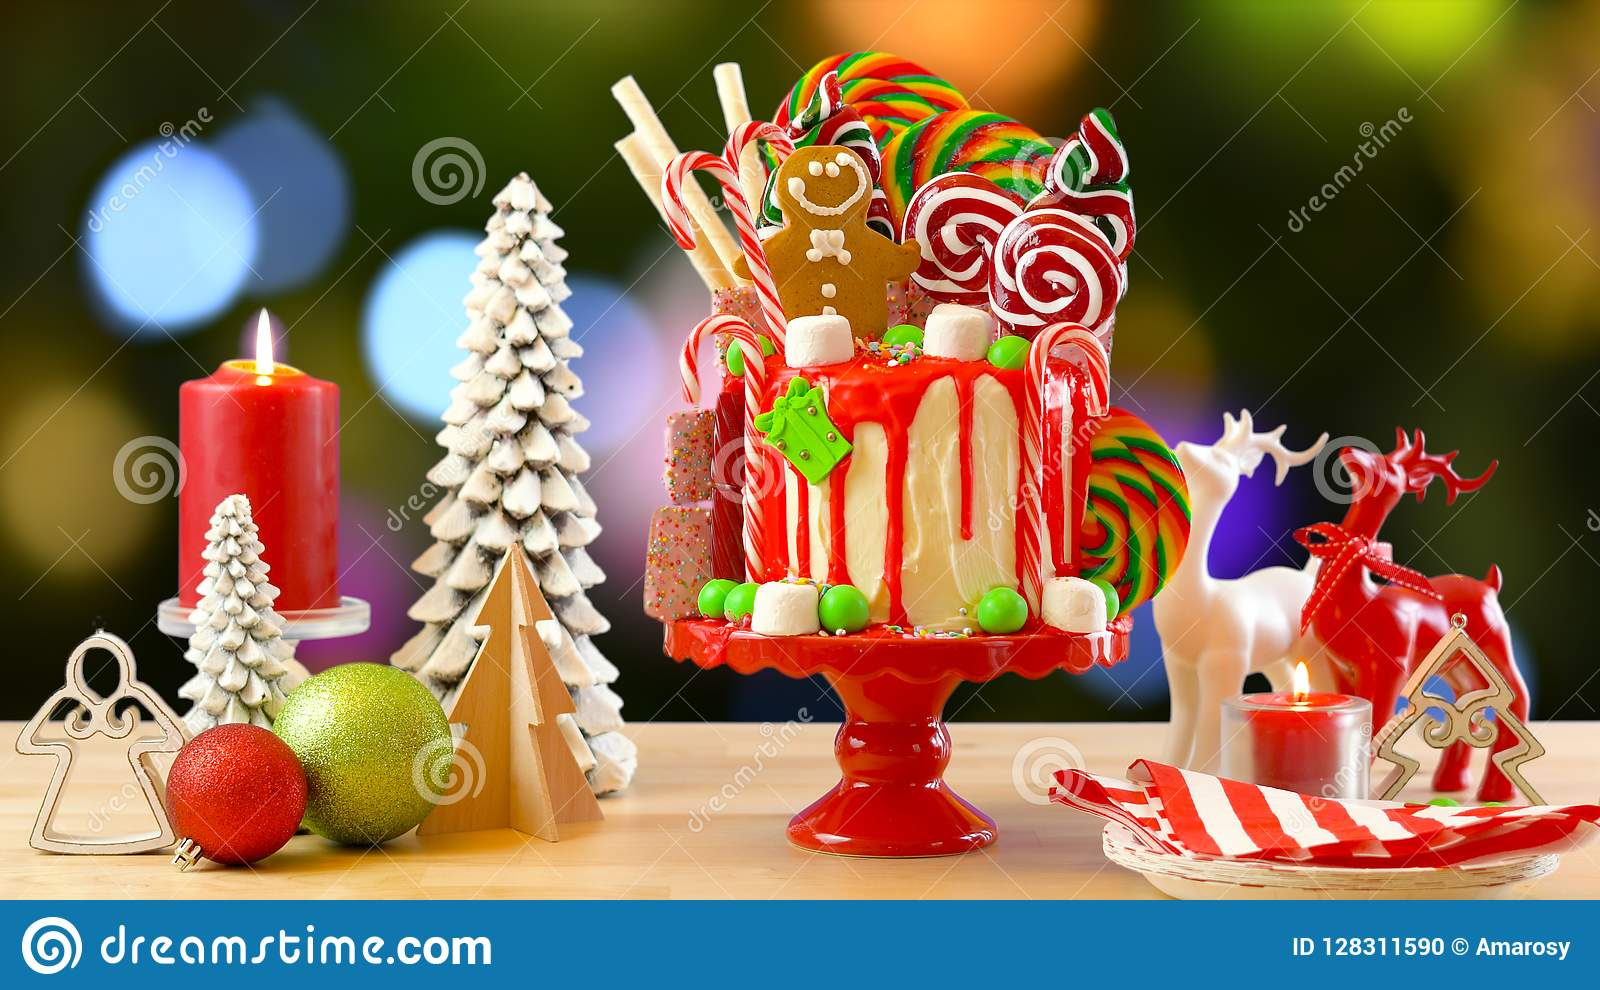 on trend festive candyland christmas drip cake against festive christmas tree bokeh lights background